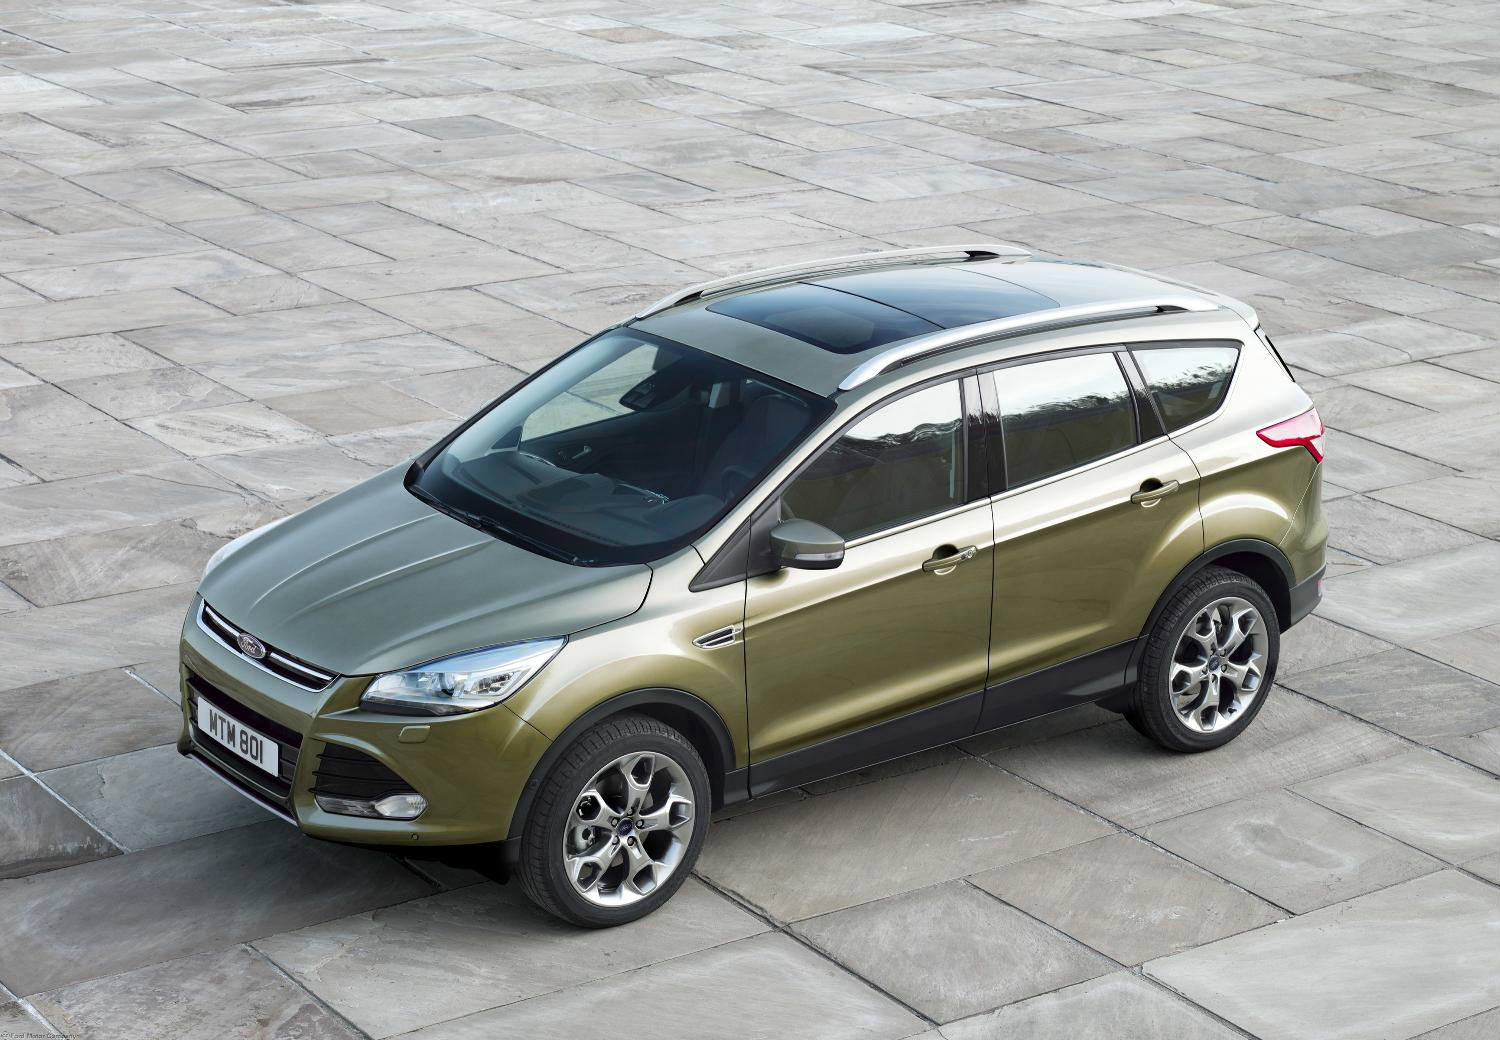 Guide to used SUVs with panoramic sunroof - Silver Ford Kuga